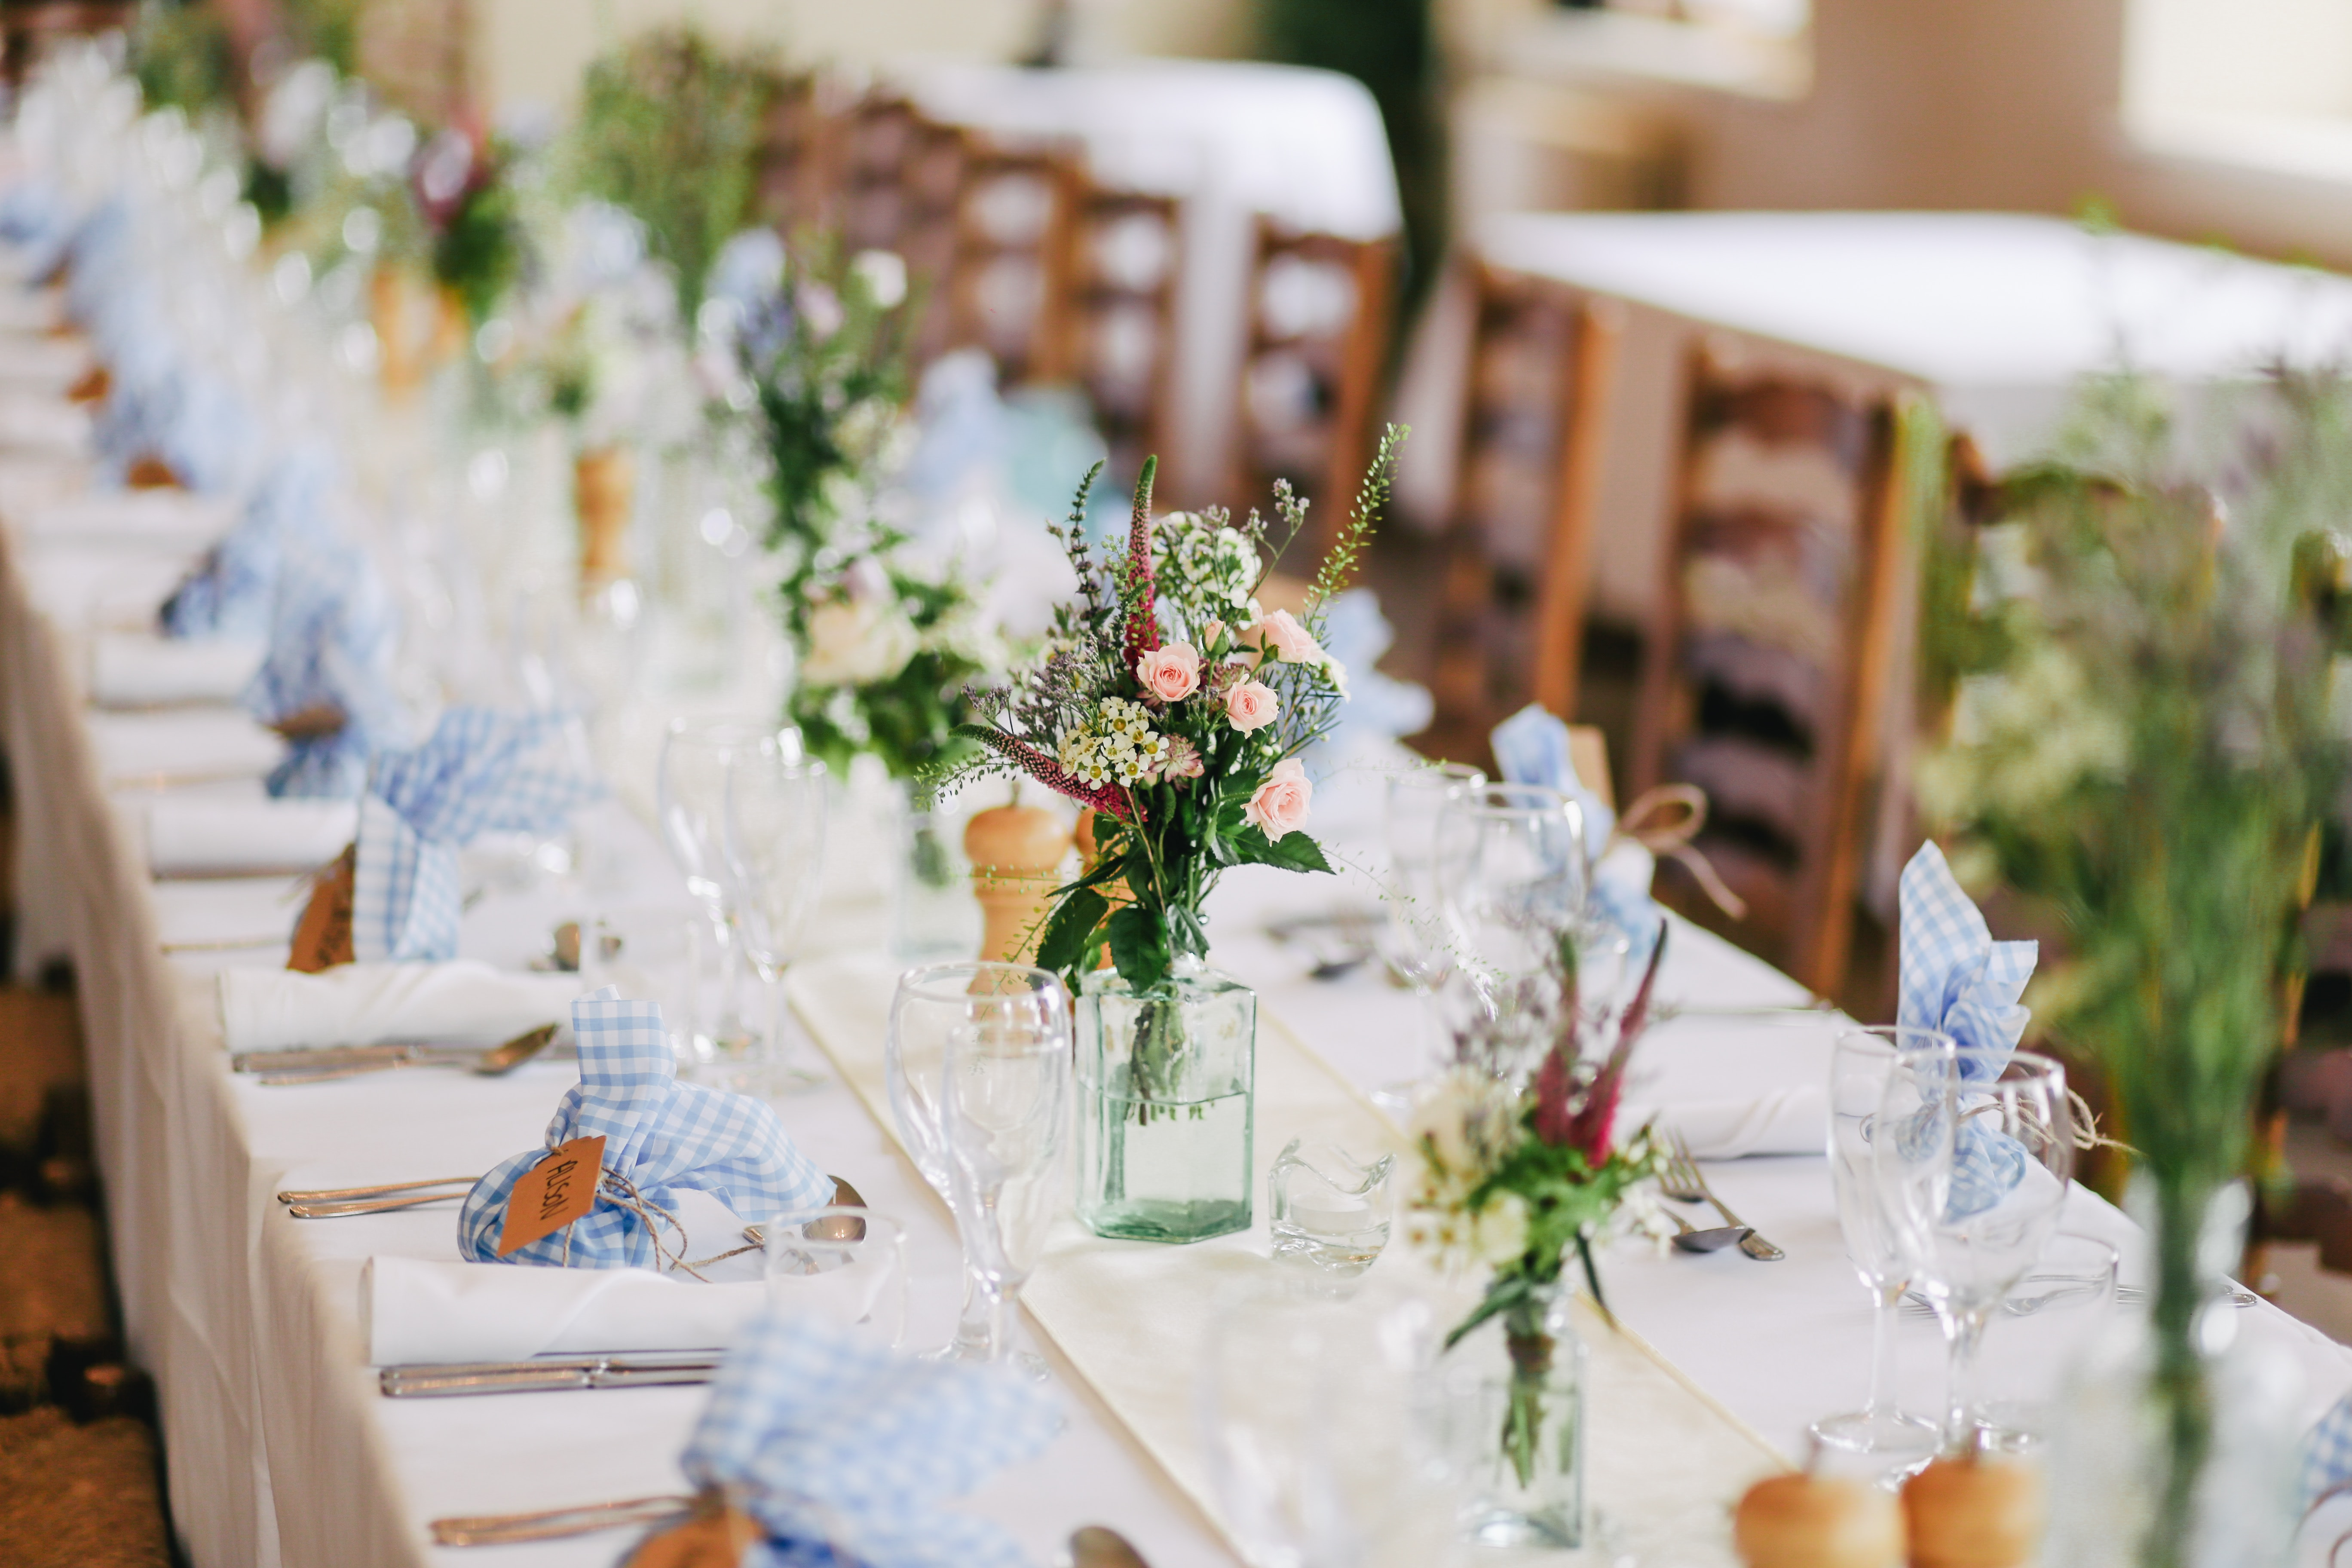 15 Wedding Centerpiece Ideas for the Most Popular Themes - mywedding